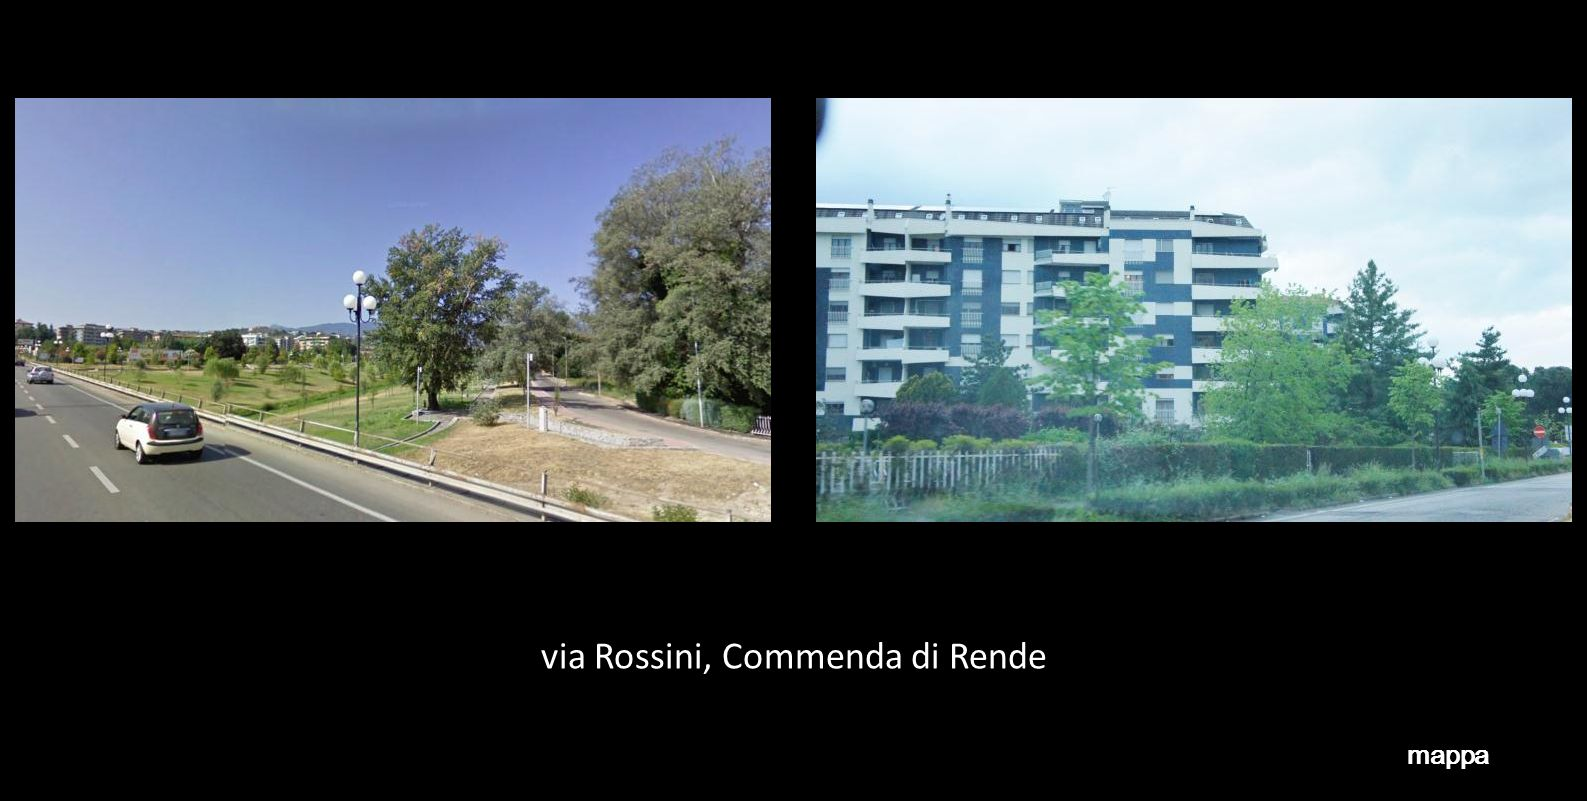 via Rossini, Commenda di Rende